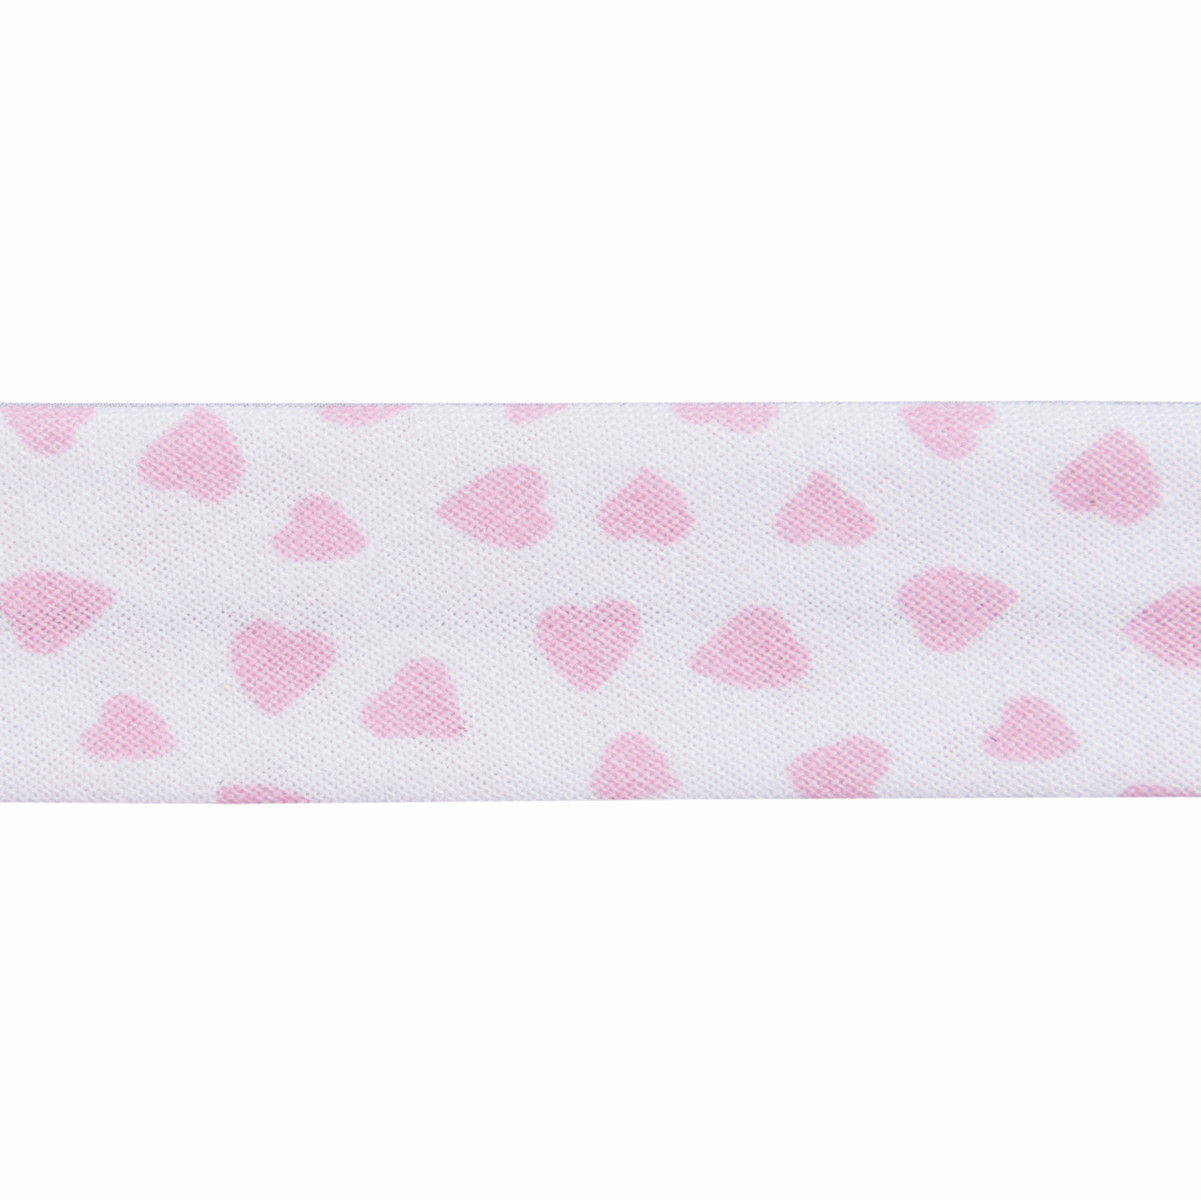 Picture of Bias Binding: Cotton: Printed: Love Heart: 25m x 20mm: Pale Pink